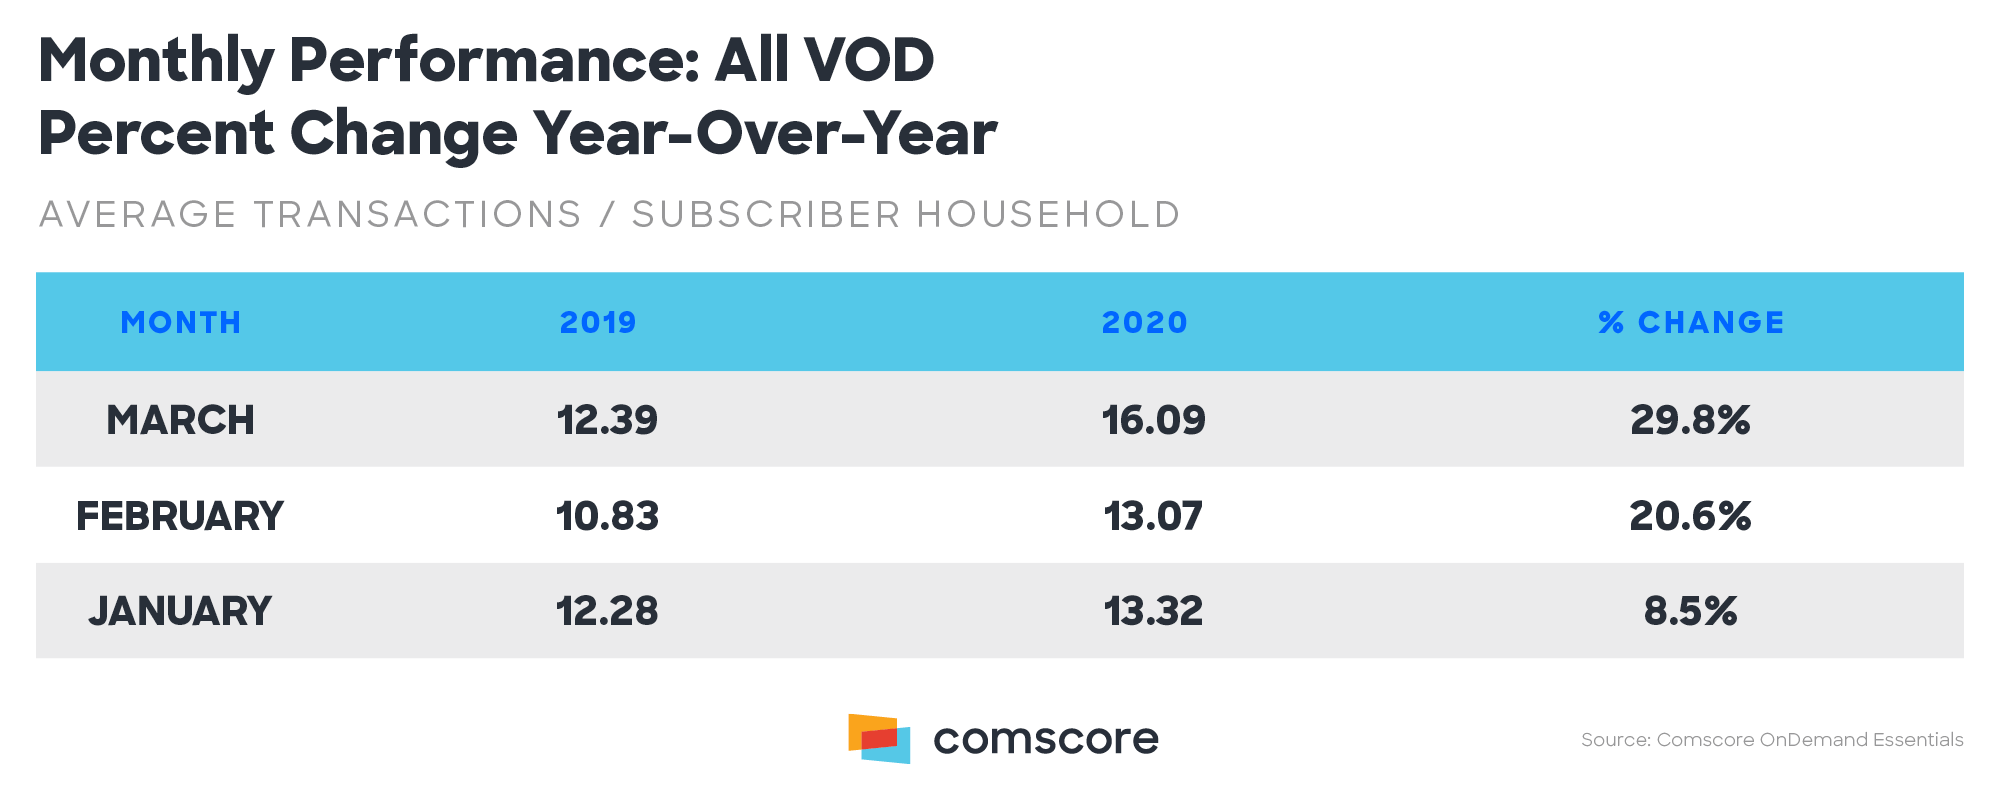 Monthly Performance All VOD Percent Change Year over Year